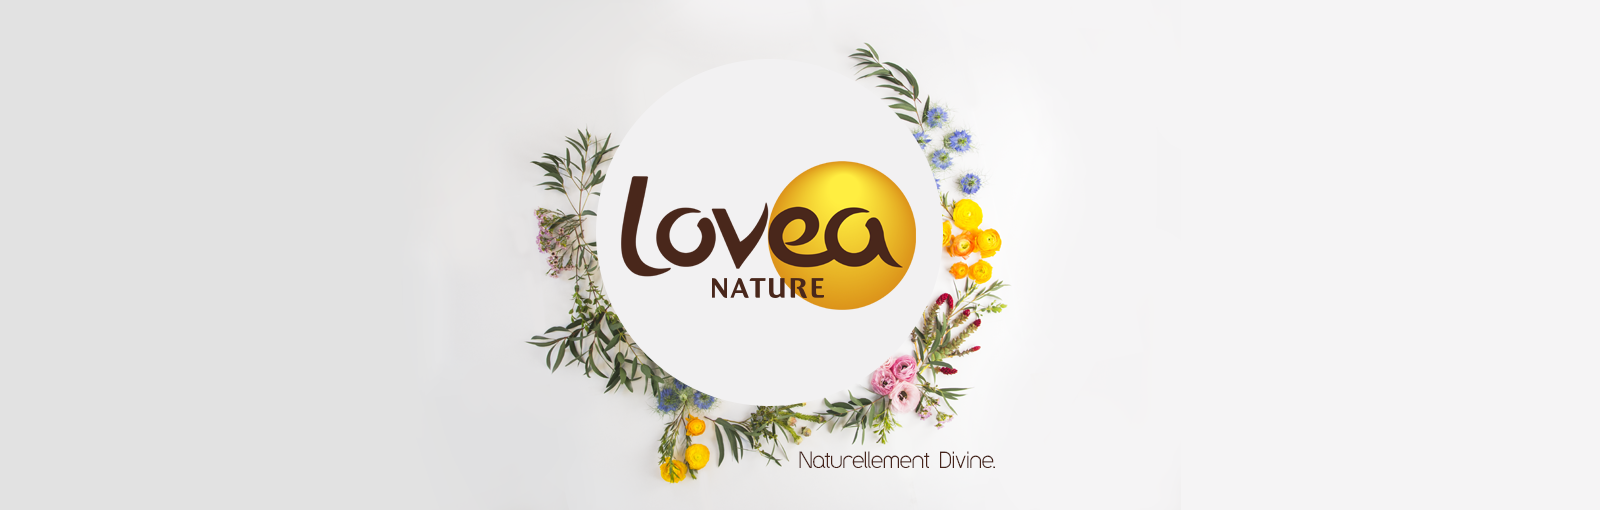 Lovea Nature, Naturellement Divine.